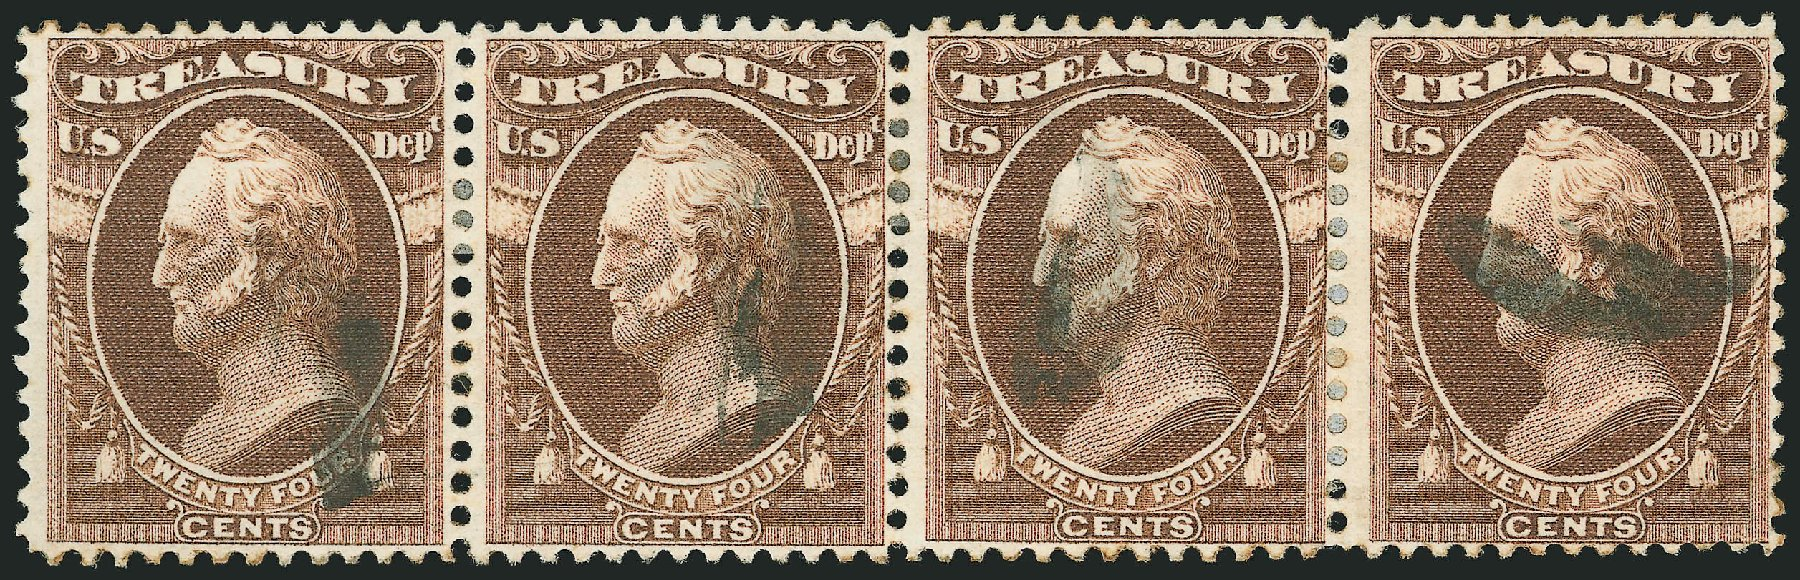 Value of US Stamps Scott Cat. O80 - 1873 24c Treasury Official. Robert Siegel Auction Galleries, Jun 2015, Sale 1100, Lot 98